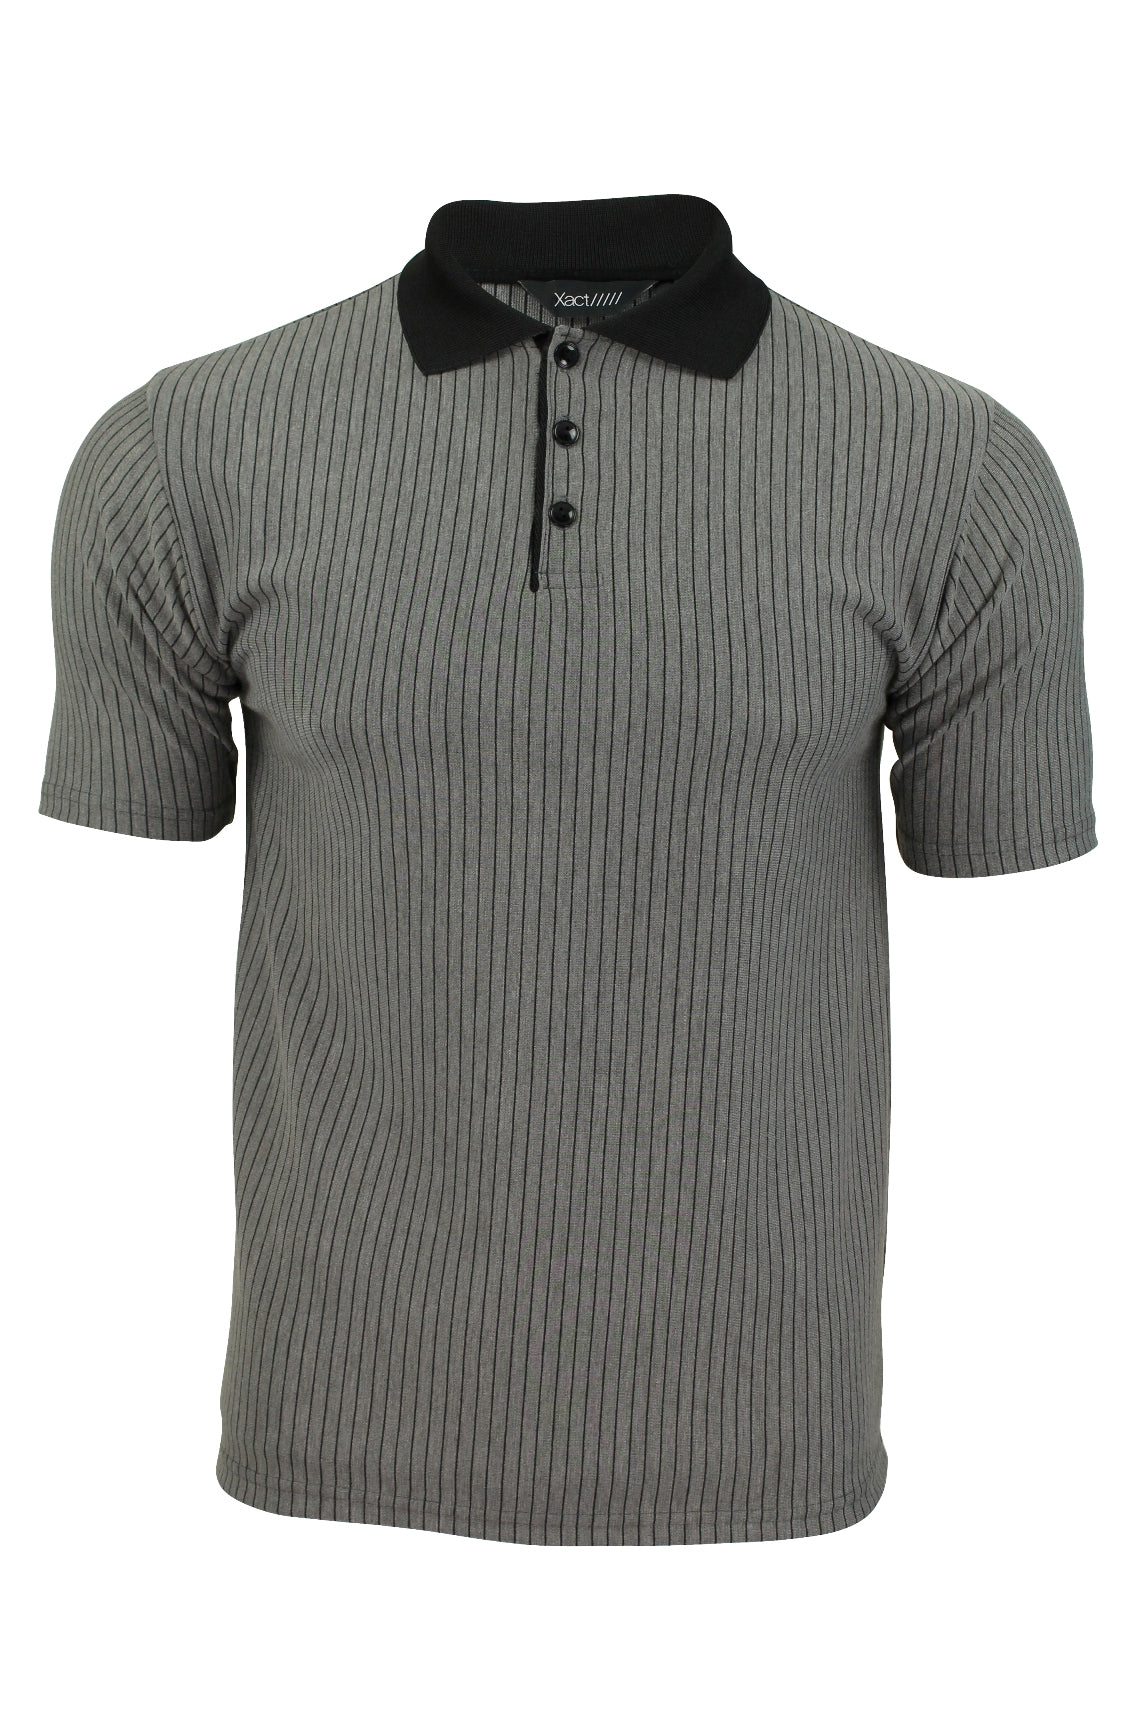 Mens Stripe Polo Shirt by Xact Clothing Short Sleeved-Main Image